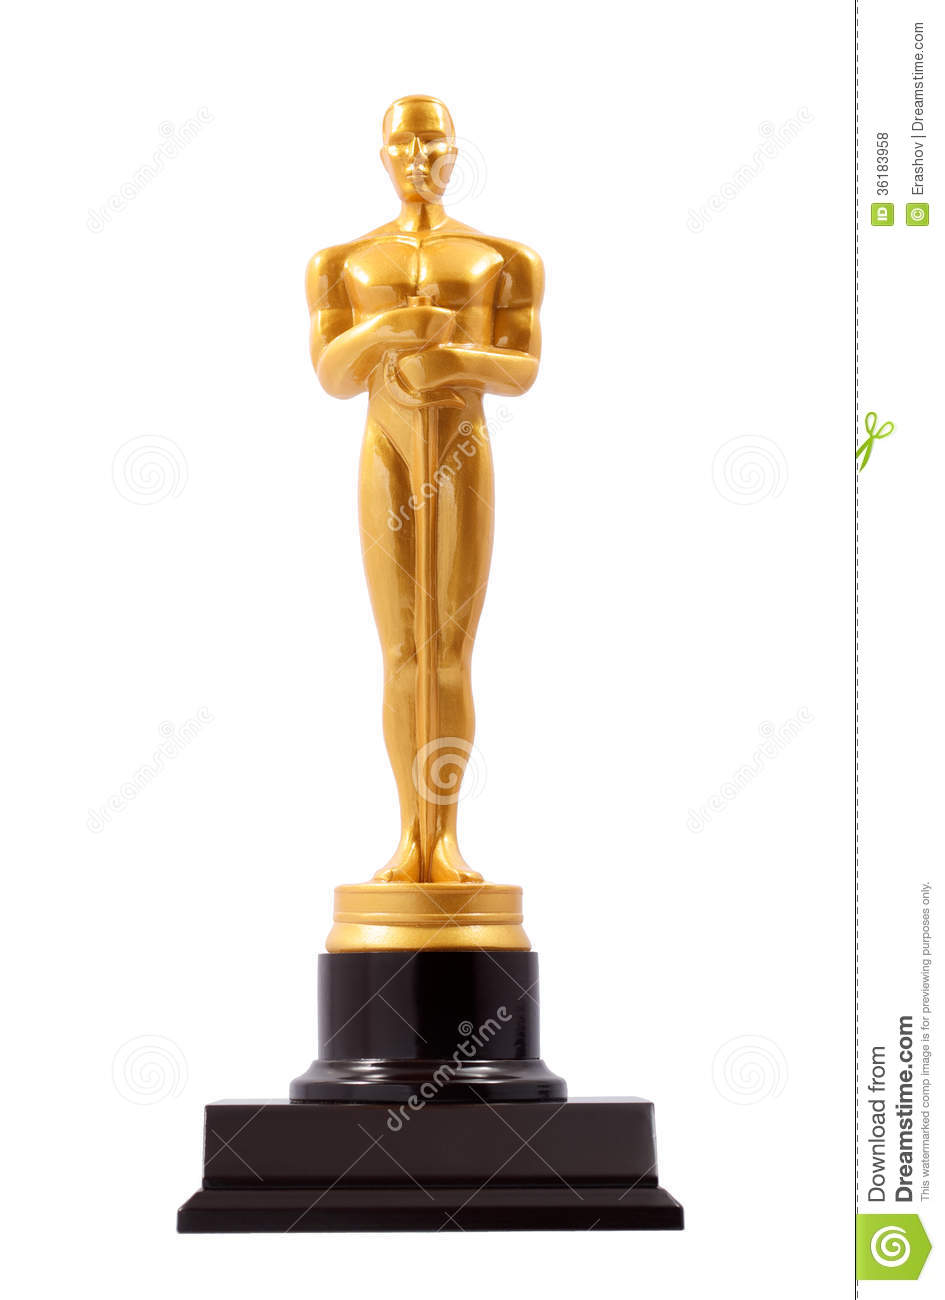 Overrated Oscars in addition Oscar besides Oscar Models Students Set As Oscar Trophy Carriers 13 0225 in addition Oscar Party also Index. on academy award oscar statue